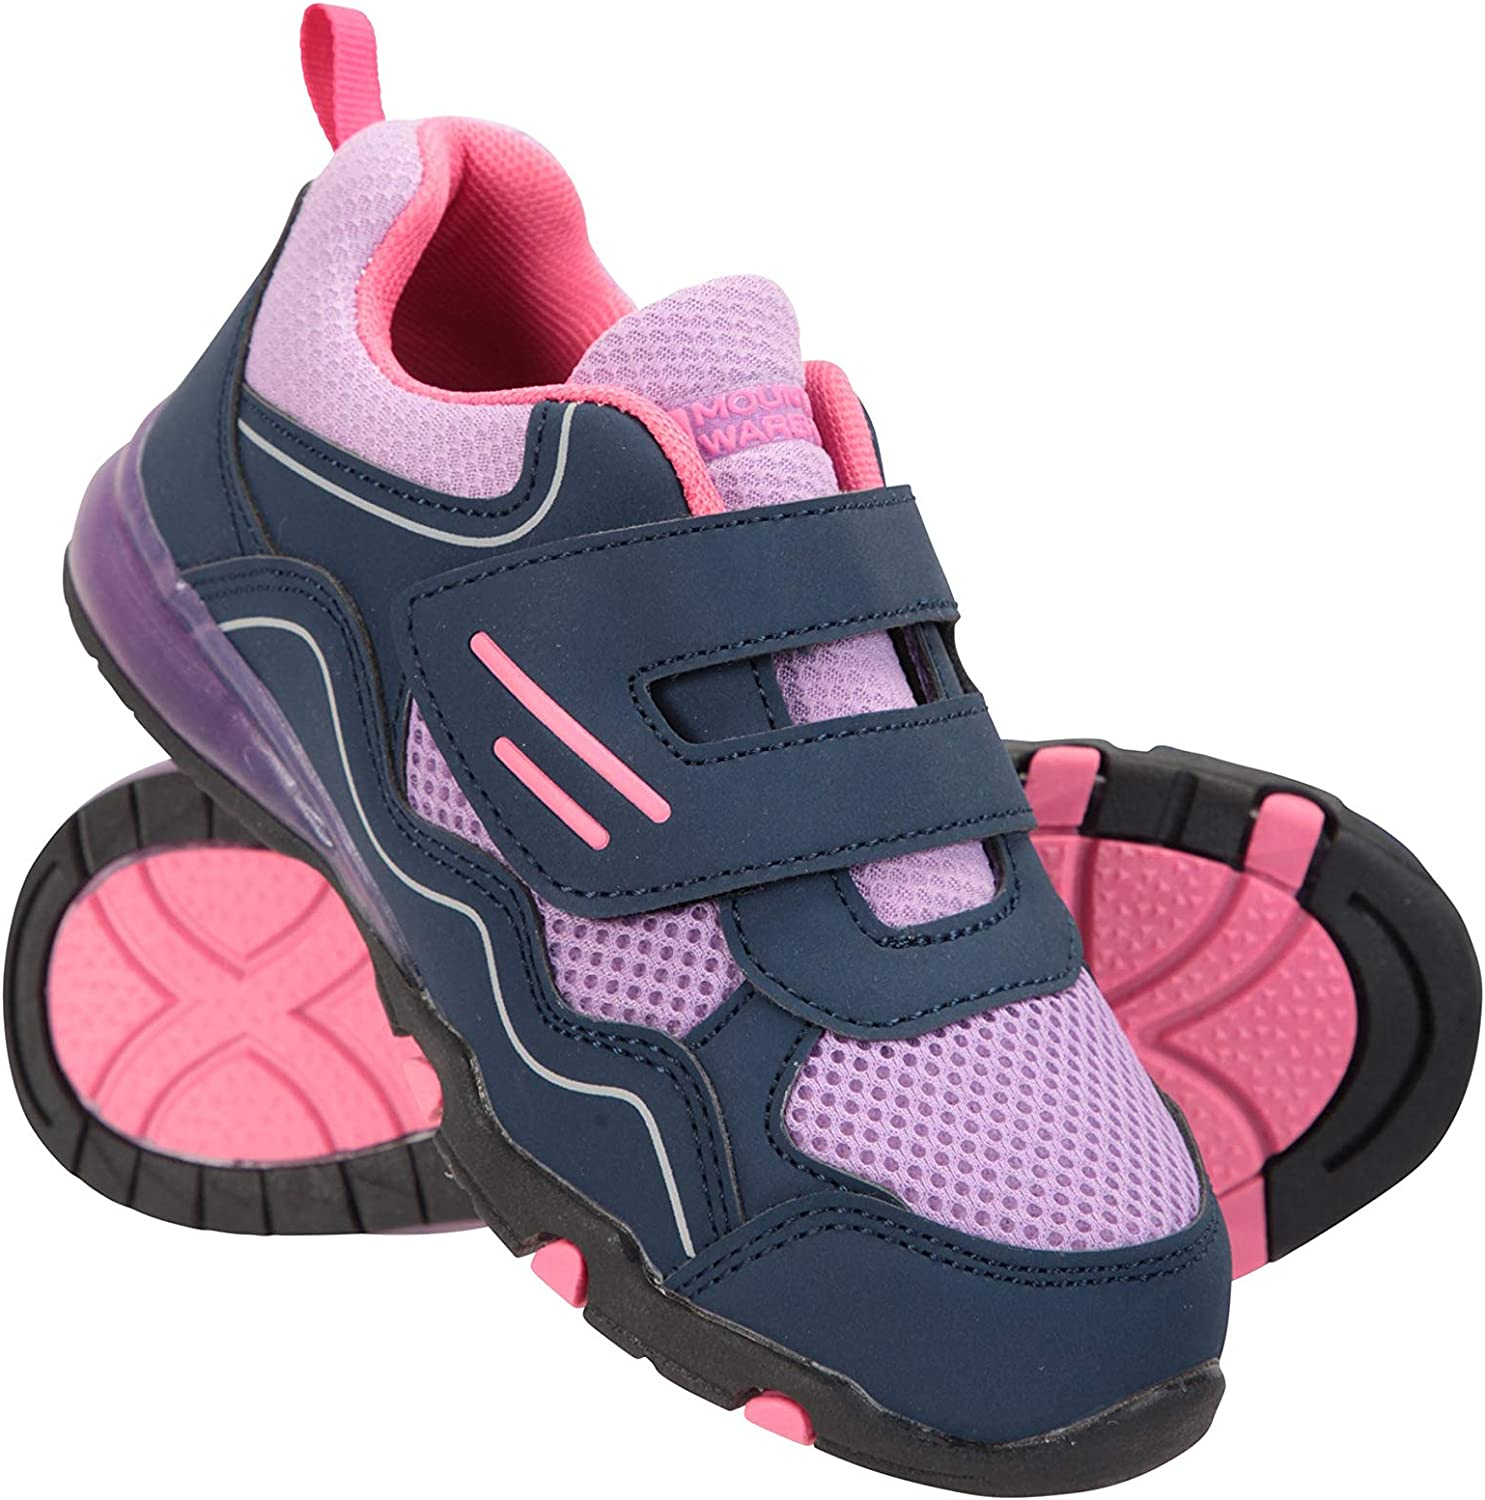 Mountain Warehouse Light Up Kids Hiking Shoes - Summer Walking Shoes